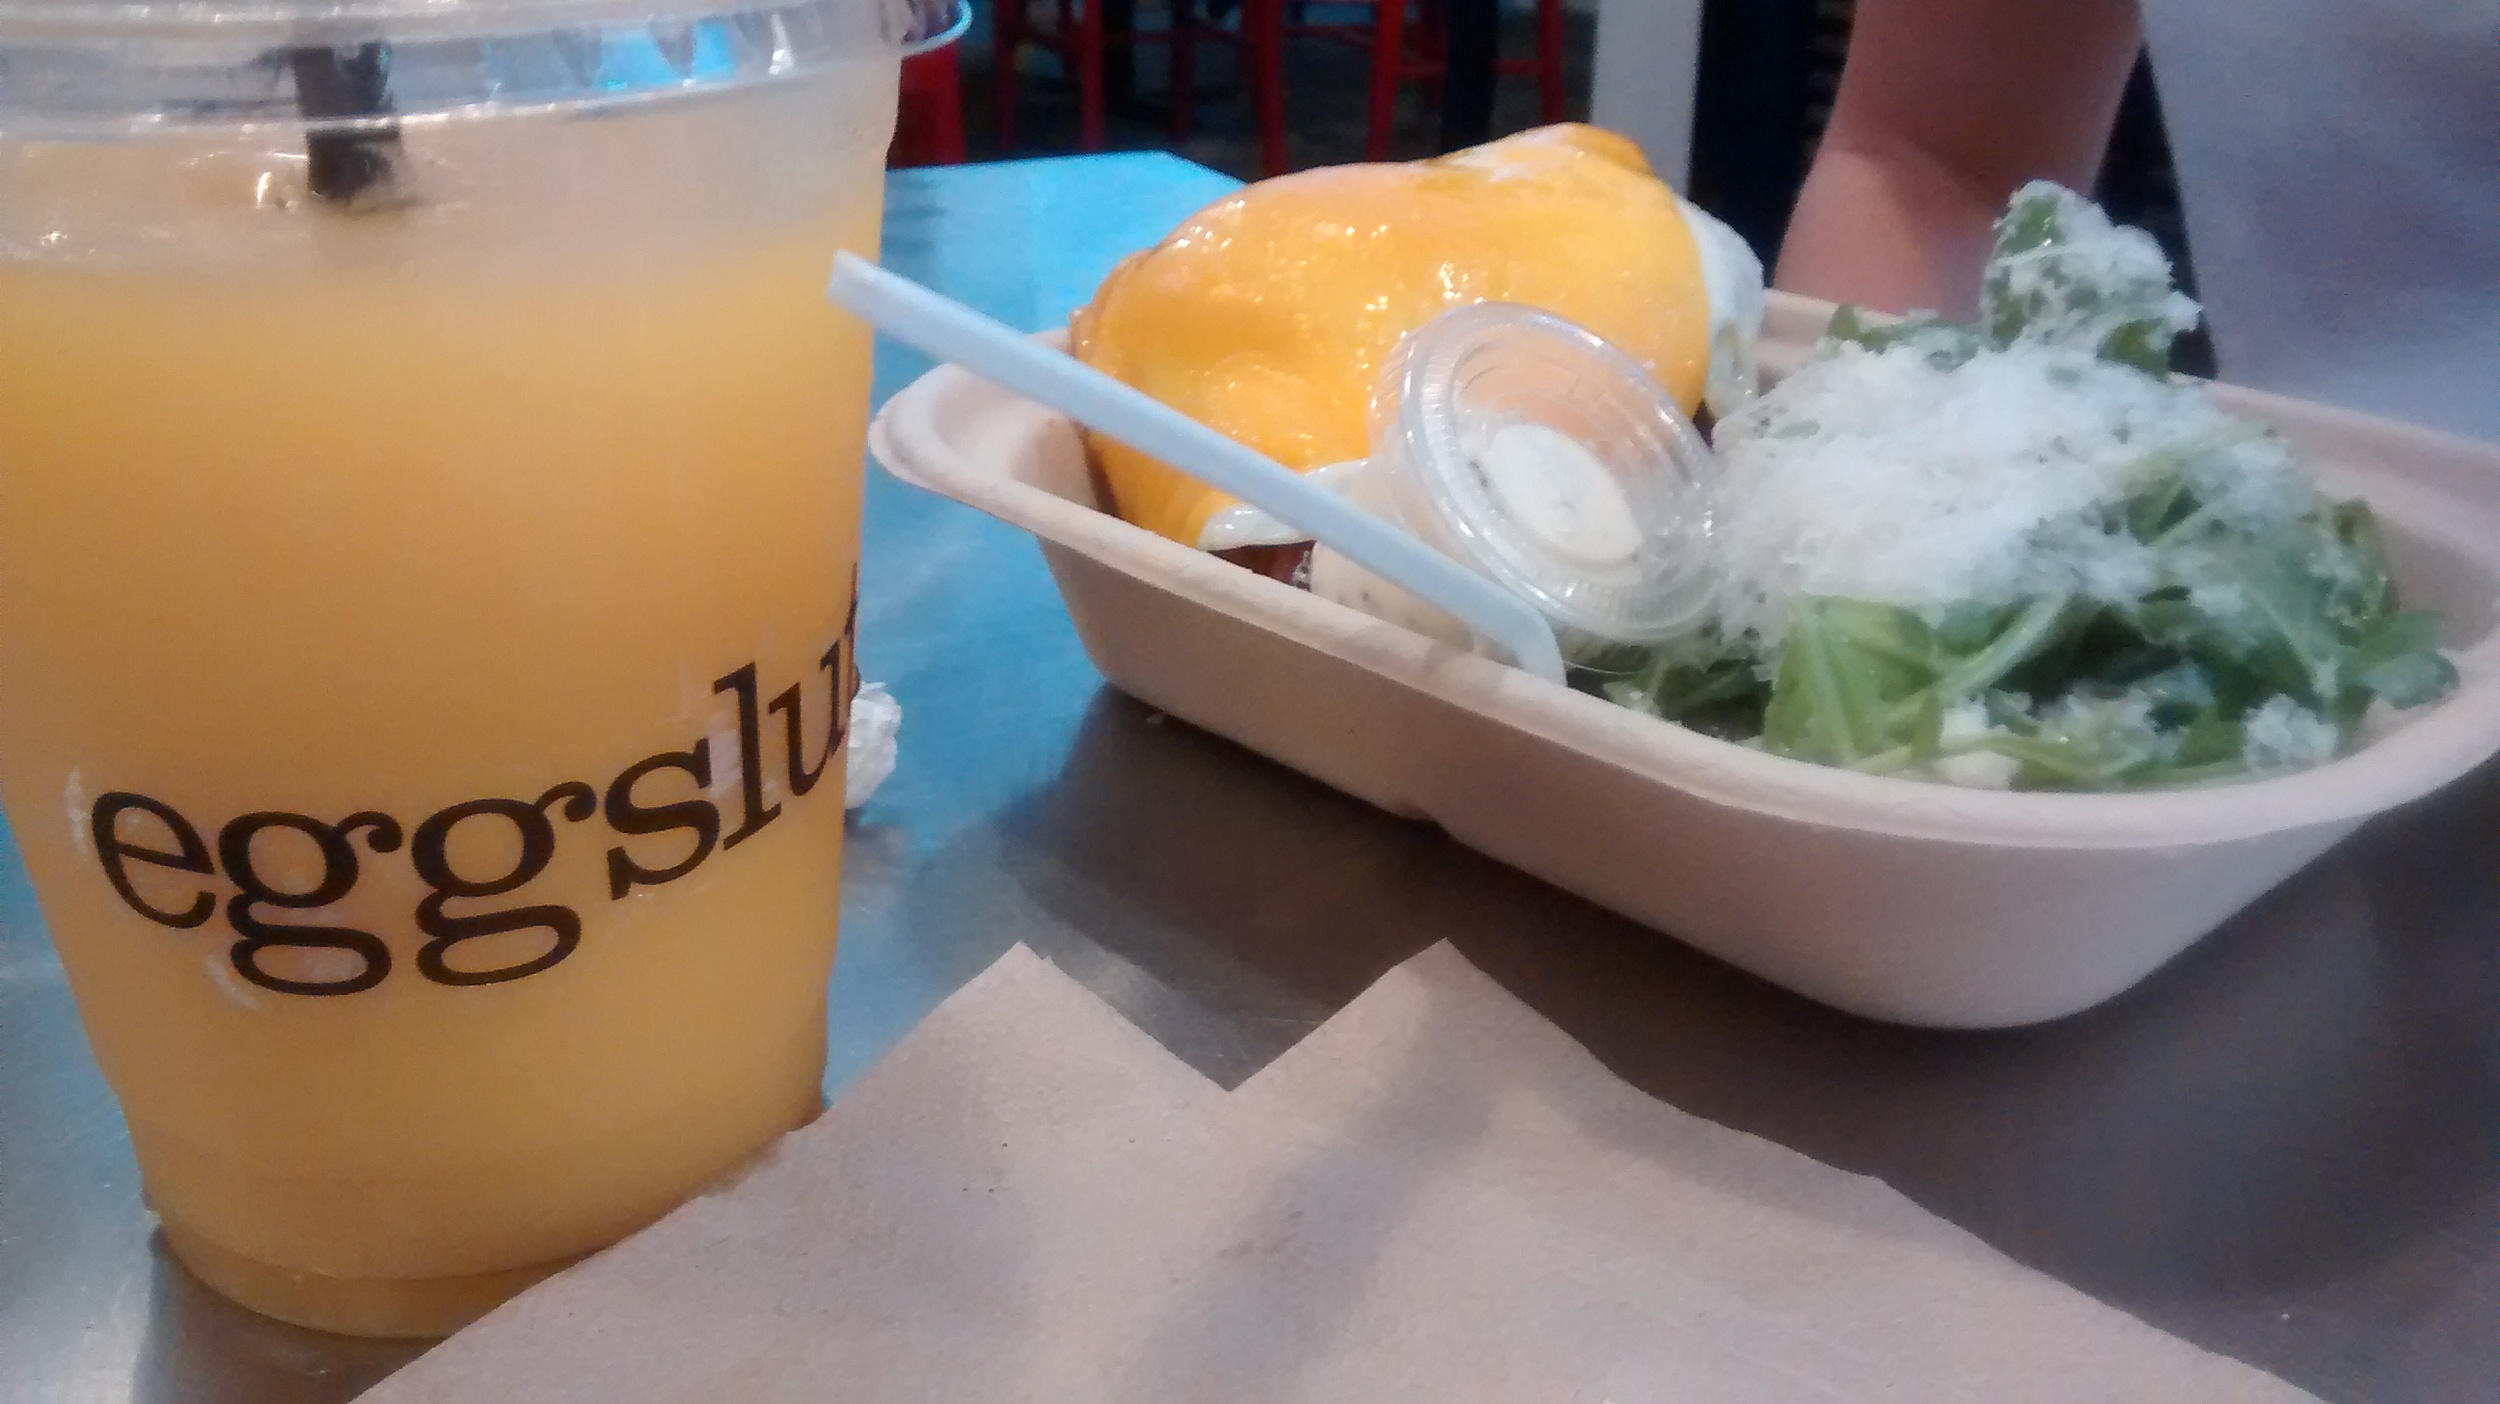 On Saturday morning we got delightful breakfast sandwiches at a fine and full-of-propriety establishment called Eggslut.